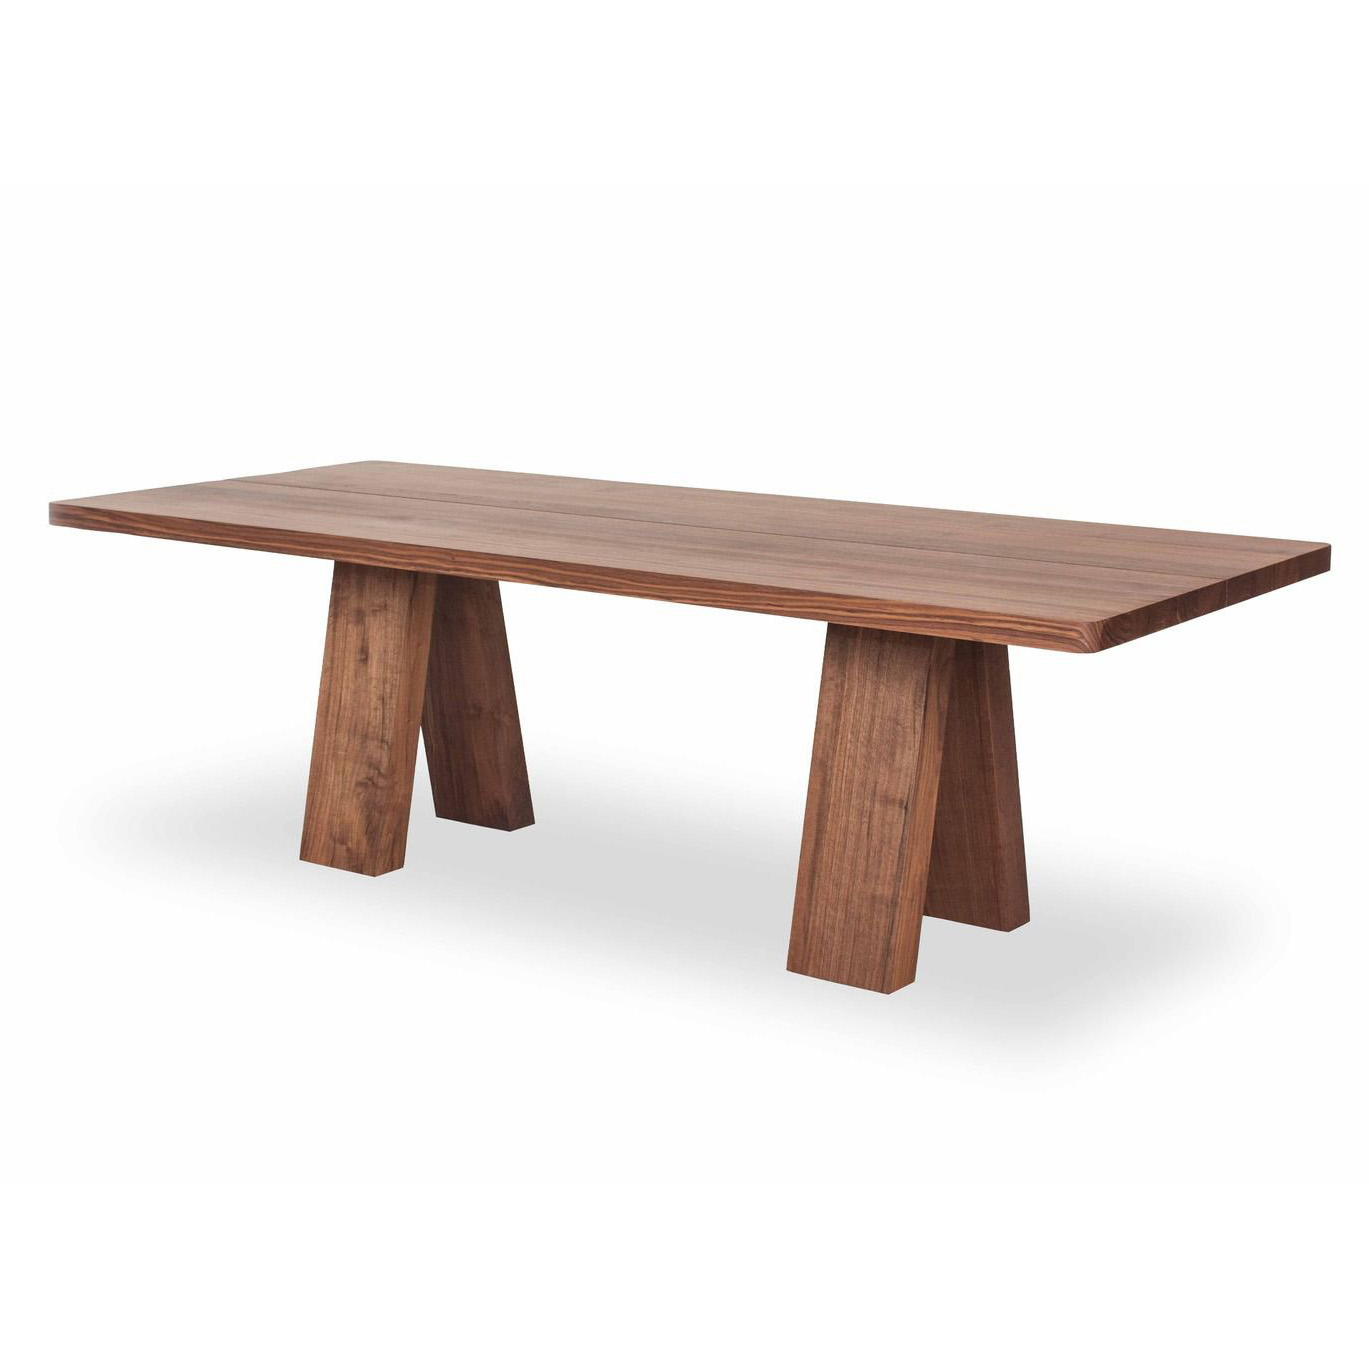 Icon dining table from Riva 1920